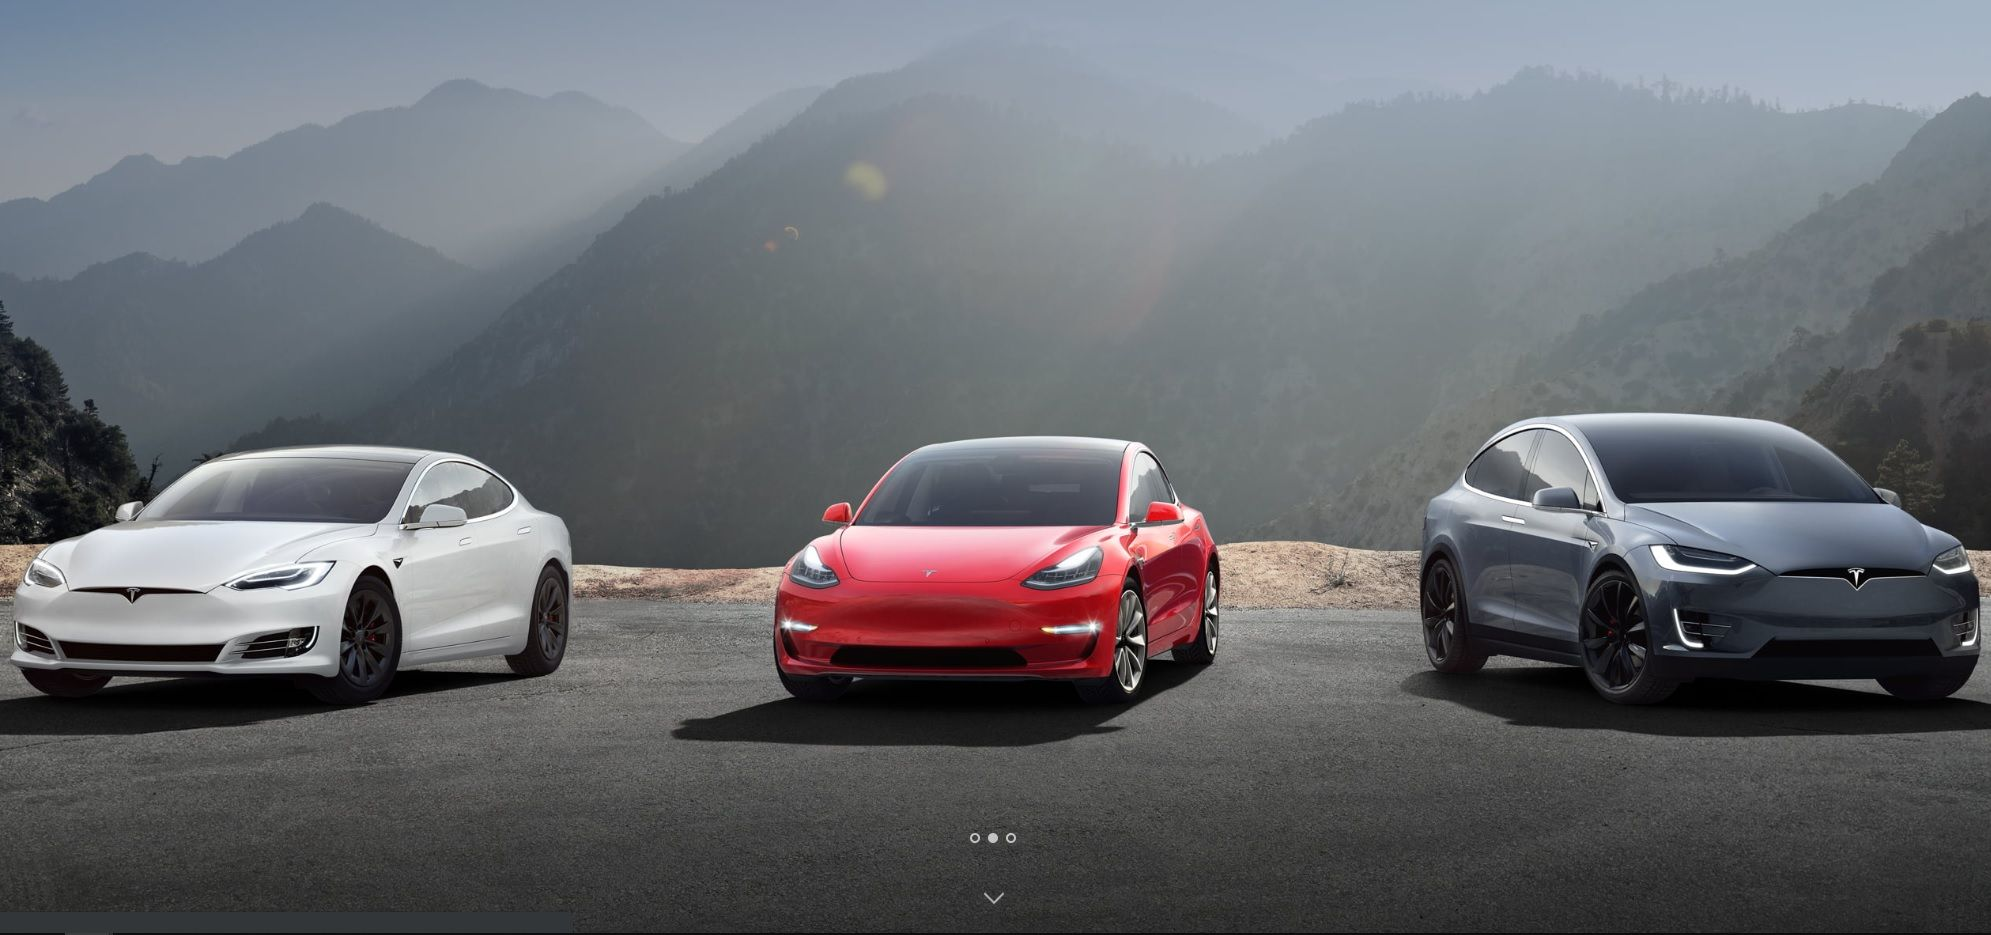 Tesla Will Be Unveiling Its Mid Sized Electric Suv Model Y On 14 March Tesla Modely Electric Car Suv Veh Tesla Model X Tesla Model Tesla Model S White